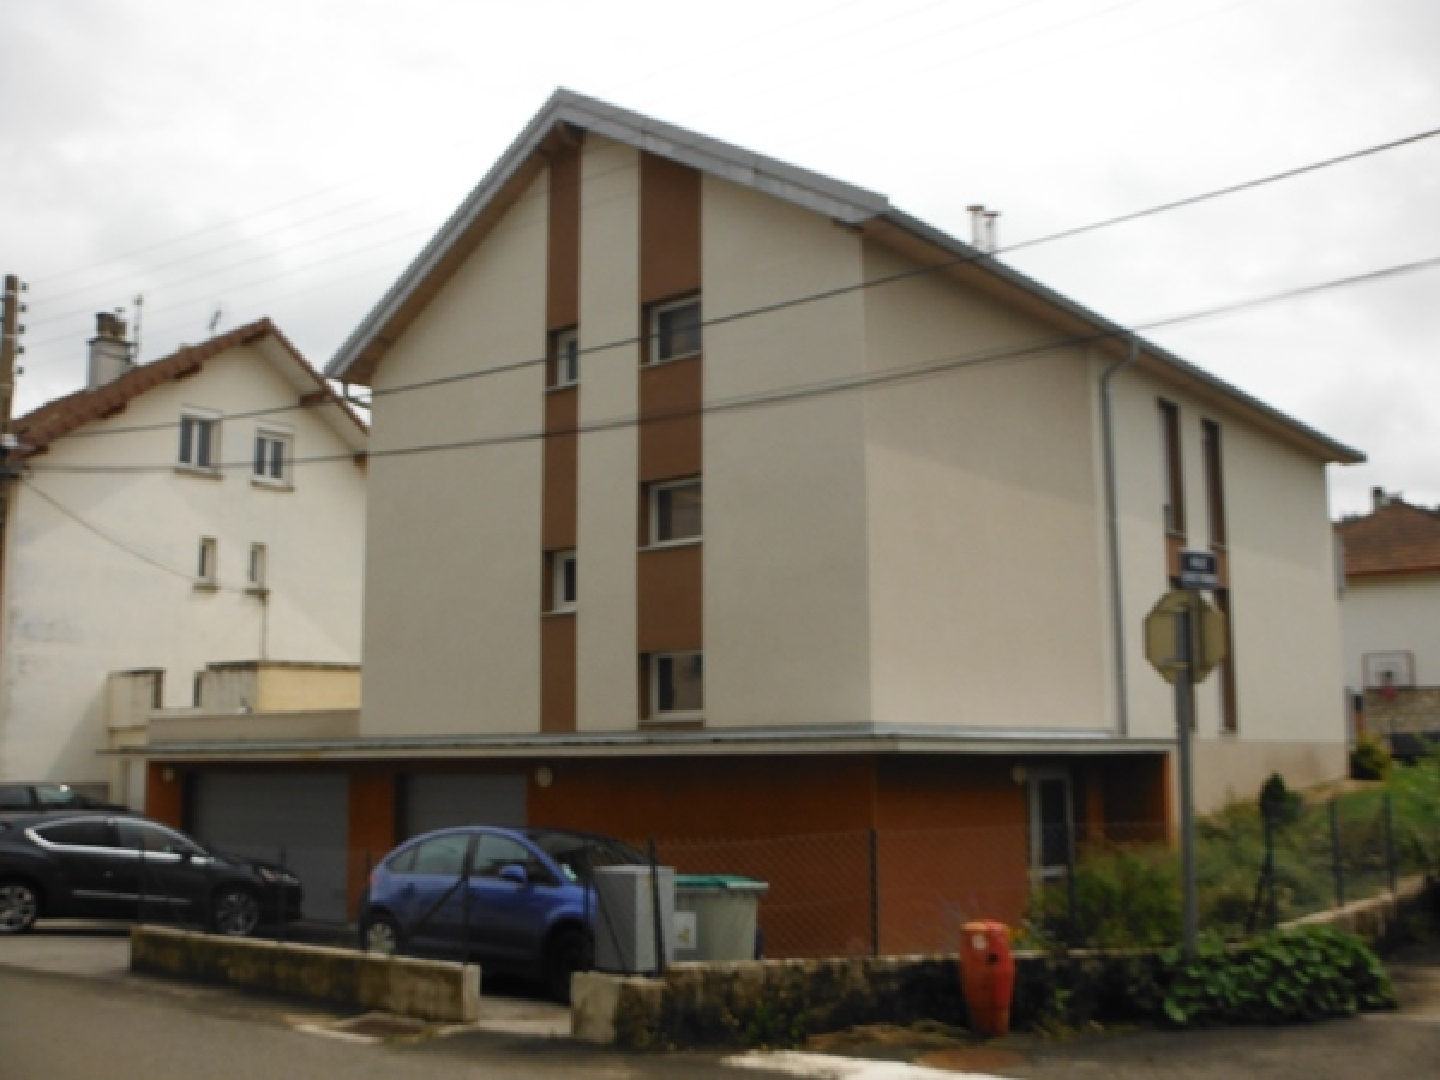 Location appartement bel f4 de 82 m avec garage et for Garage ford pontarlier 25300